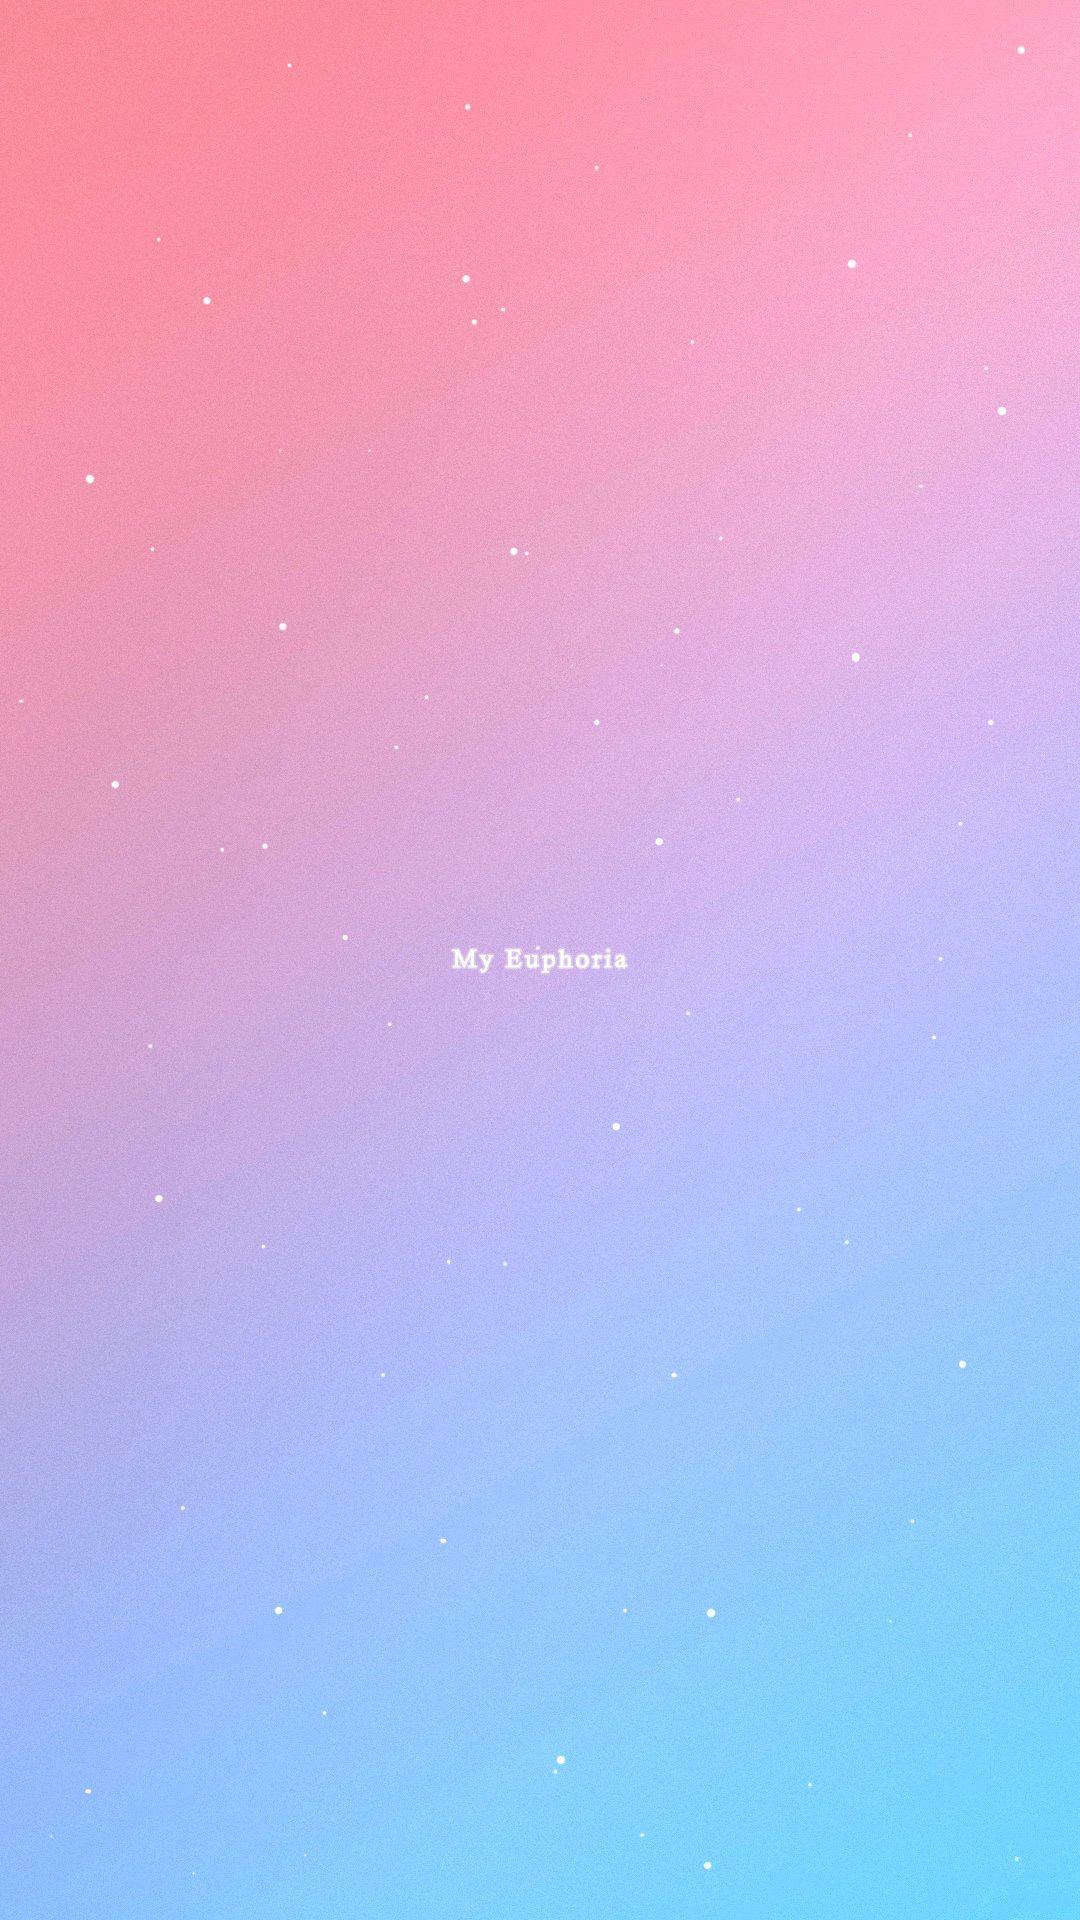 Euphoria By Jungkook Screen Wallpaper, Tumblr Wallpaper